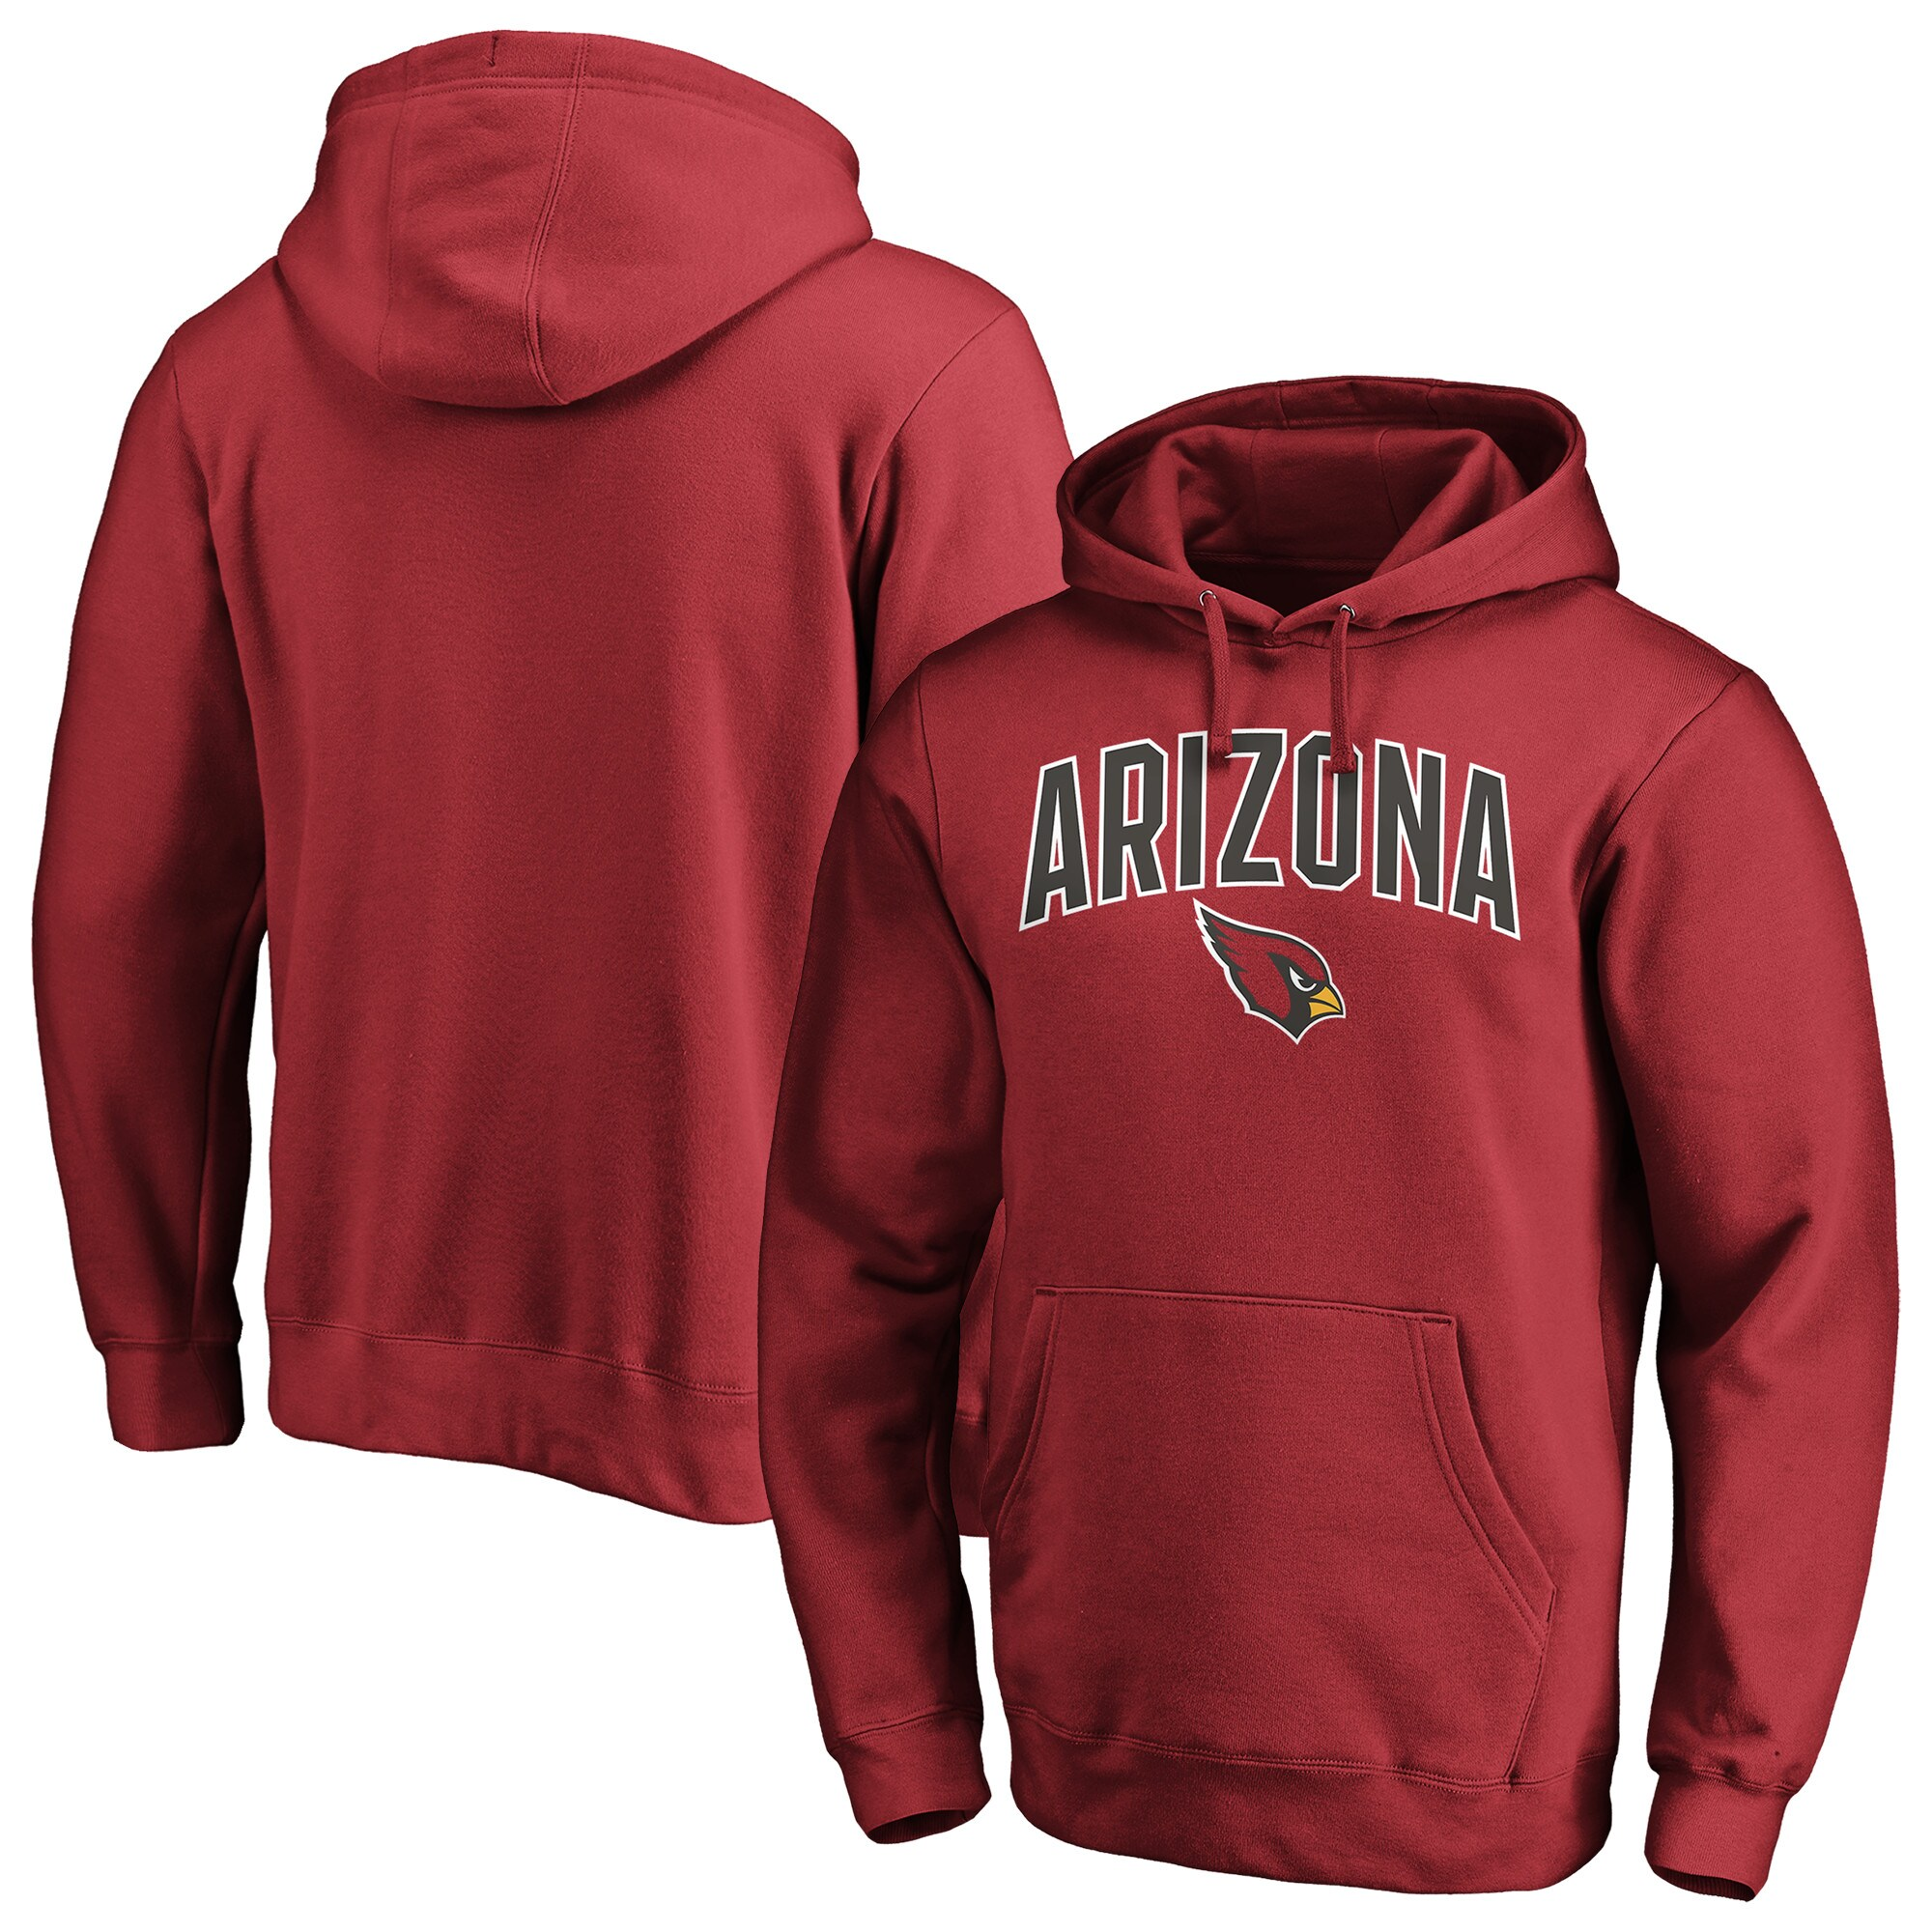 Arizona Cardinals NFL Pro Line by Fanatics Branded Iconic Engage Arch Pullover Hoodie - Cardinal